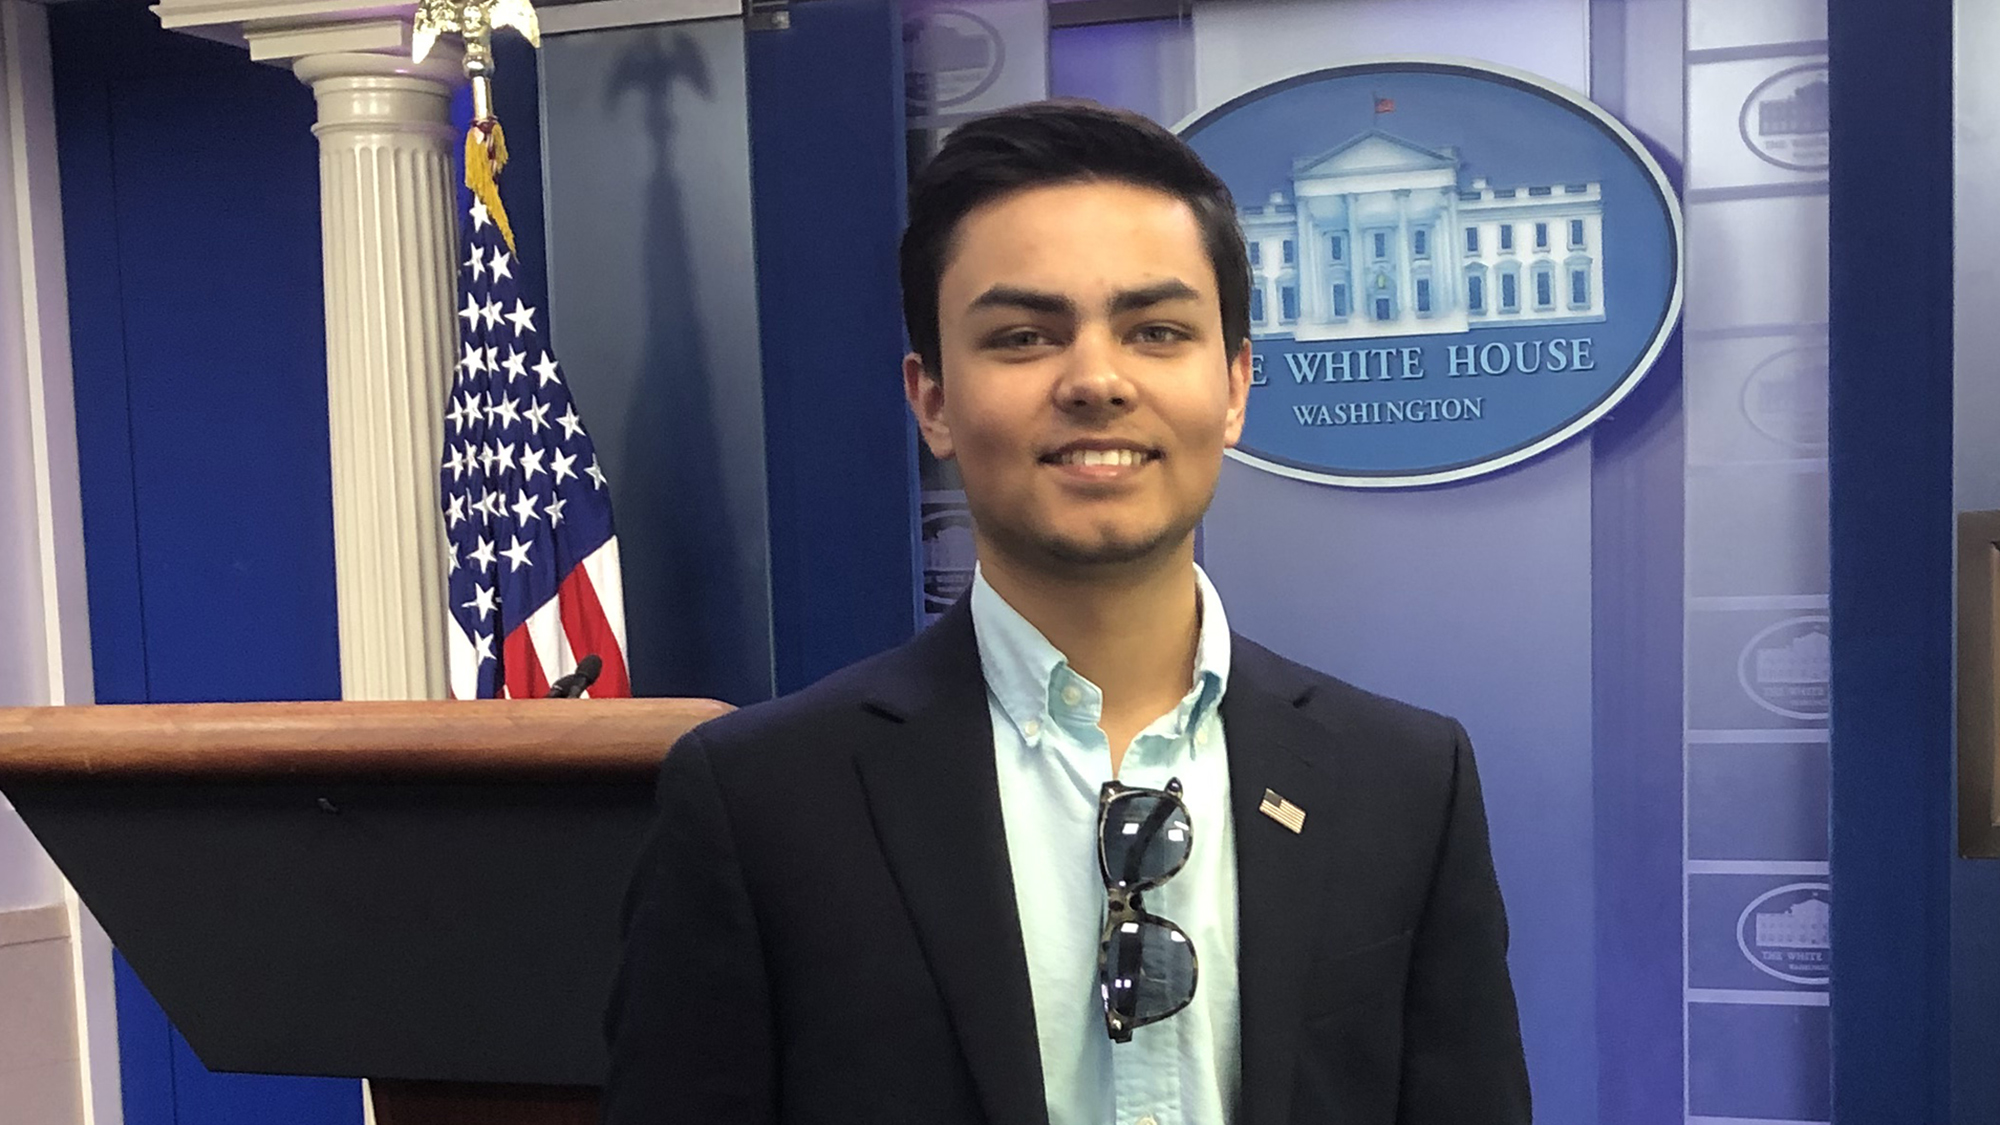 Jeevan Murthy in the White House.